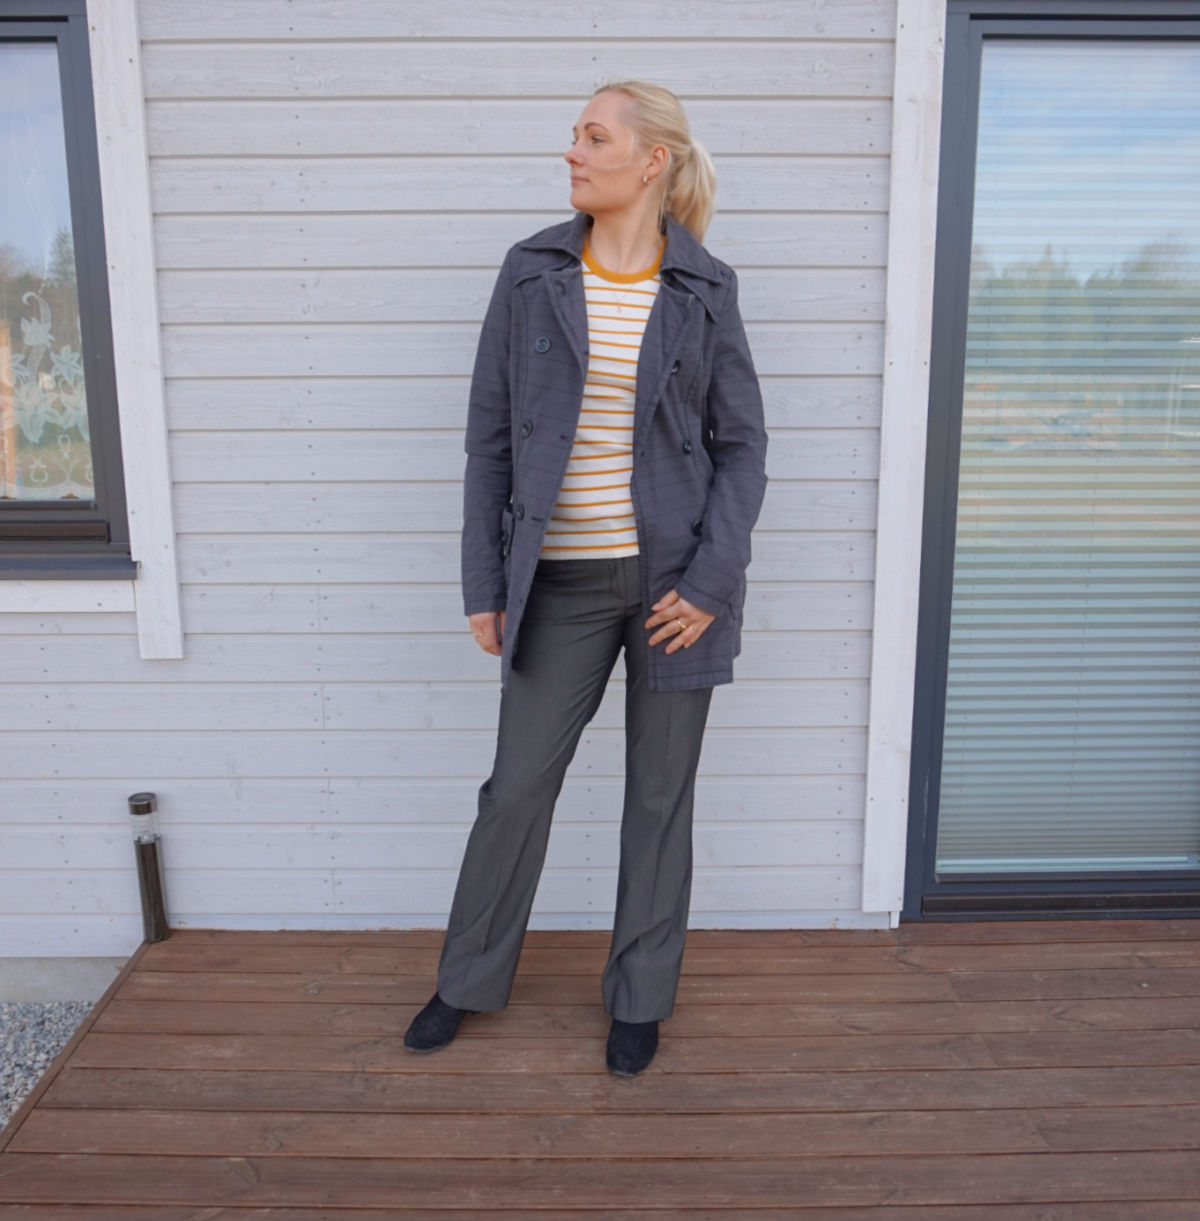 Simple outfit for spring - grey checkered coat, yellow white striped t-shirt, grey dressy pants and black ankle boots.